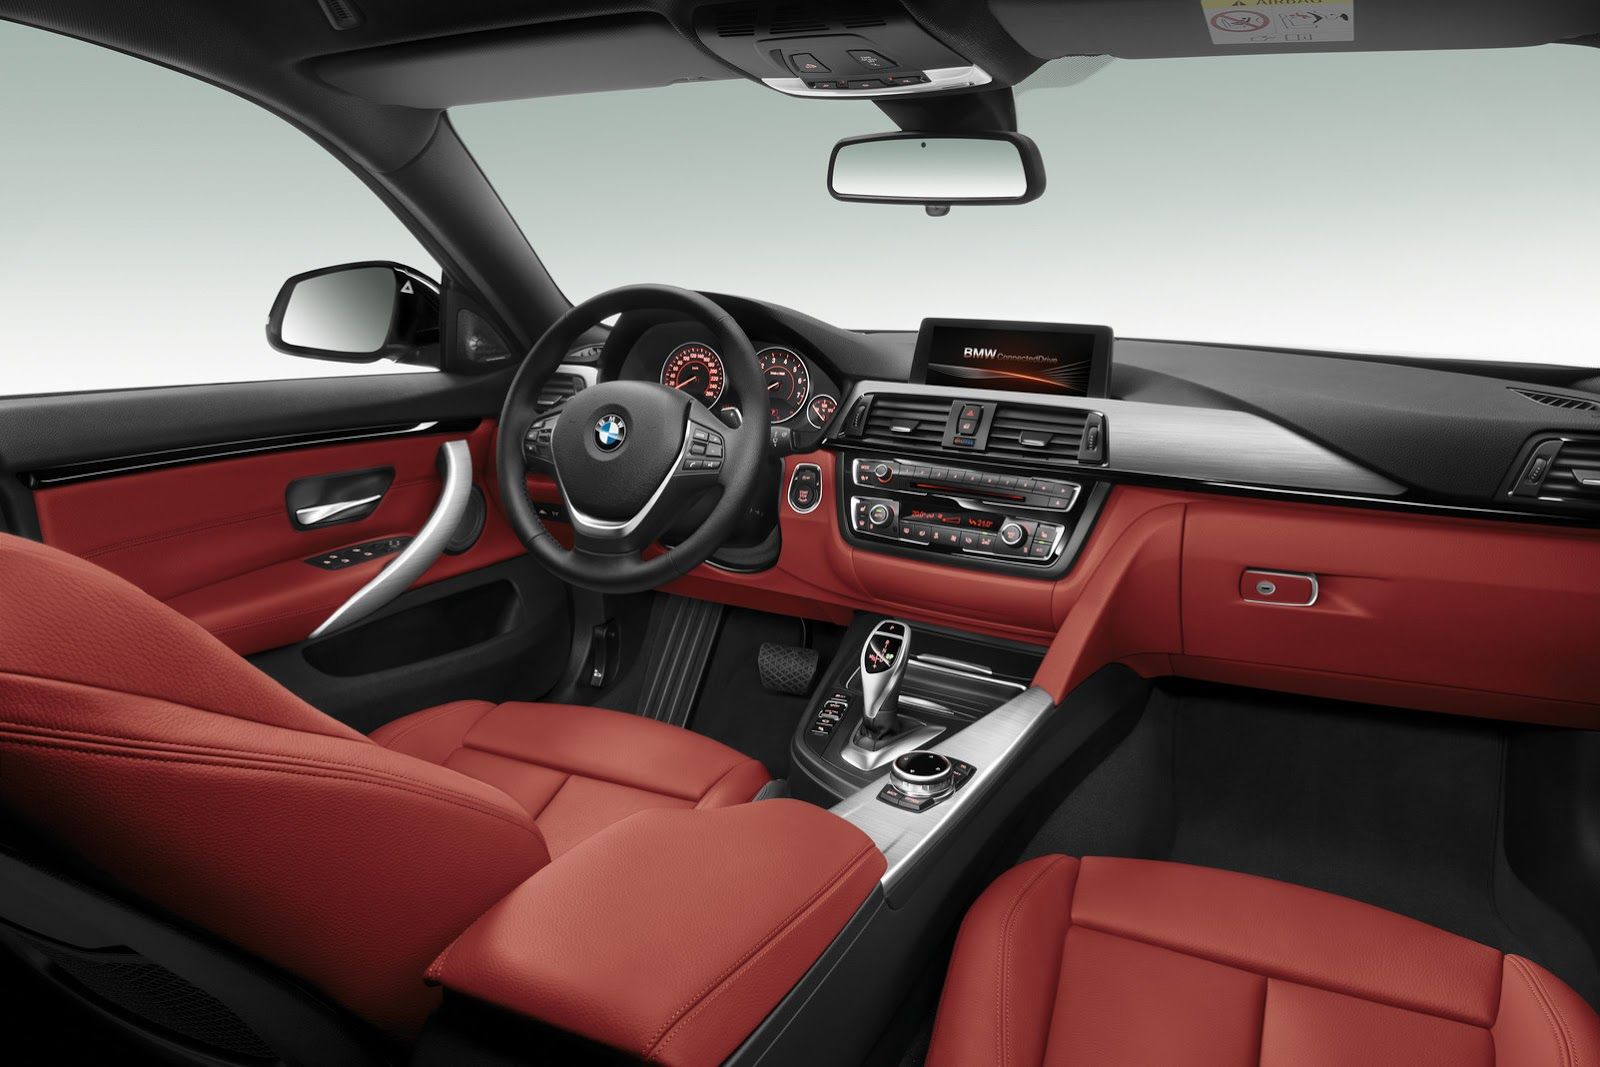 Cool bmw 2014 4 series interior car images hd bmw black bmw with red interior hd auto car wallpapers